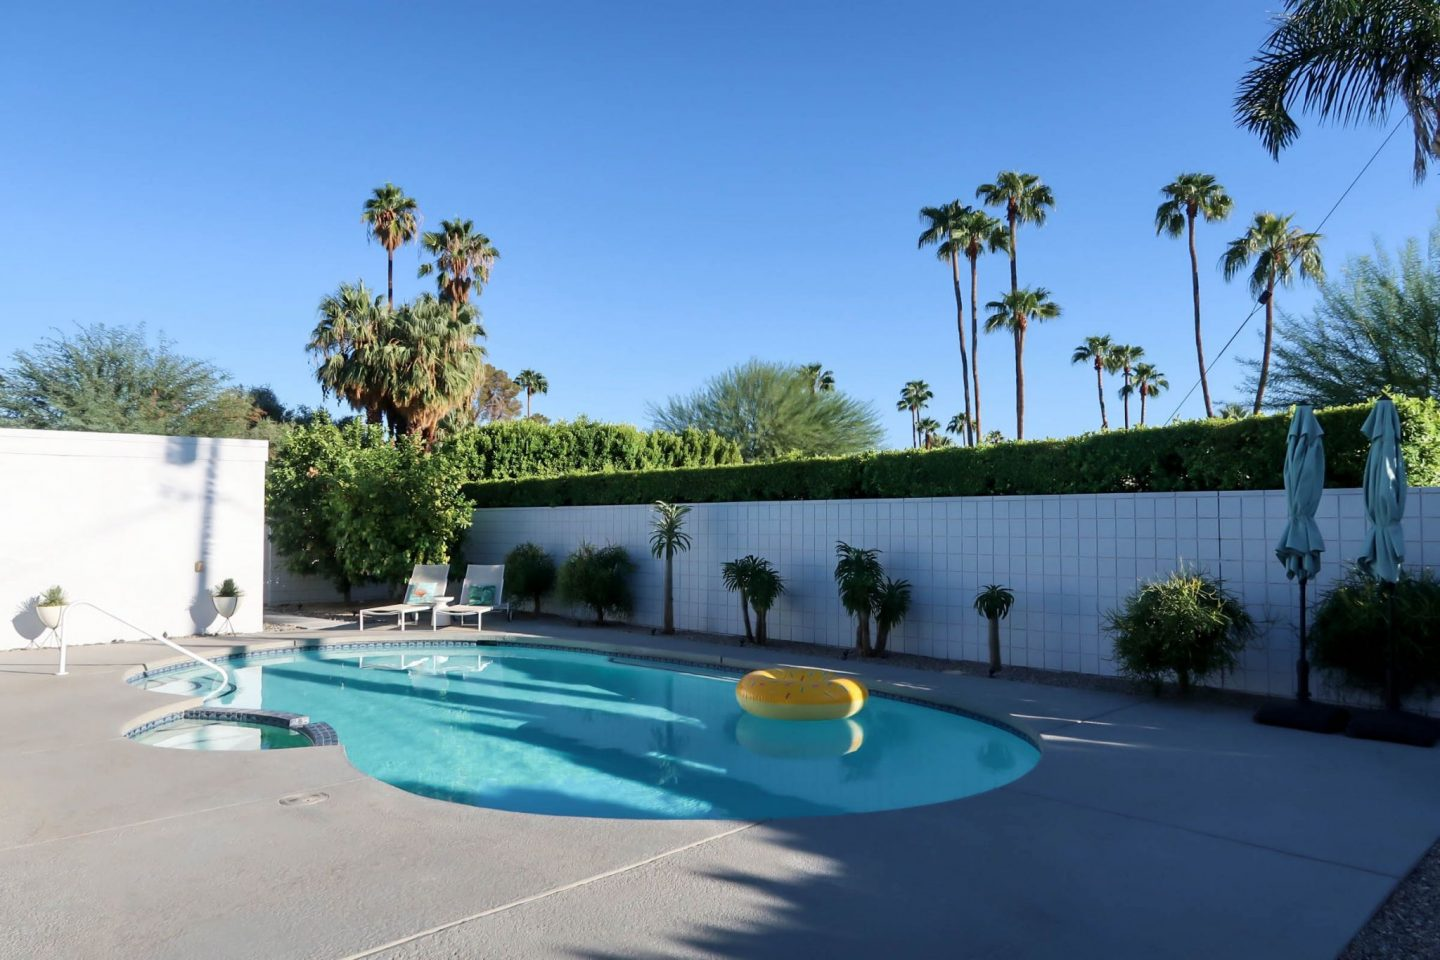 Palm Springs - Modern Home - Backyard Pool - Lauren Schwaiger Travel Blog